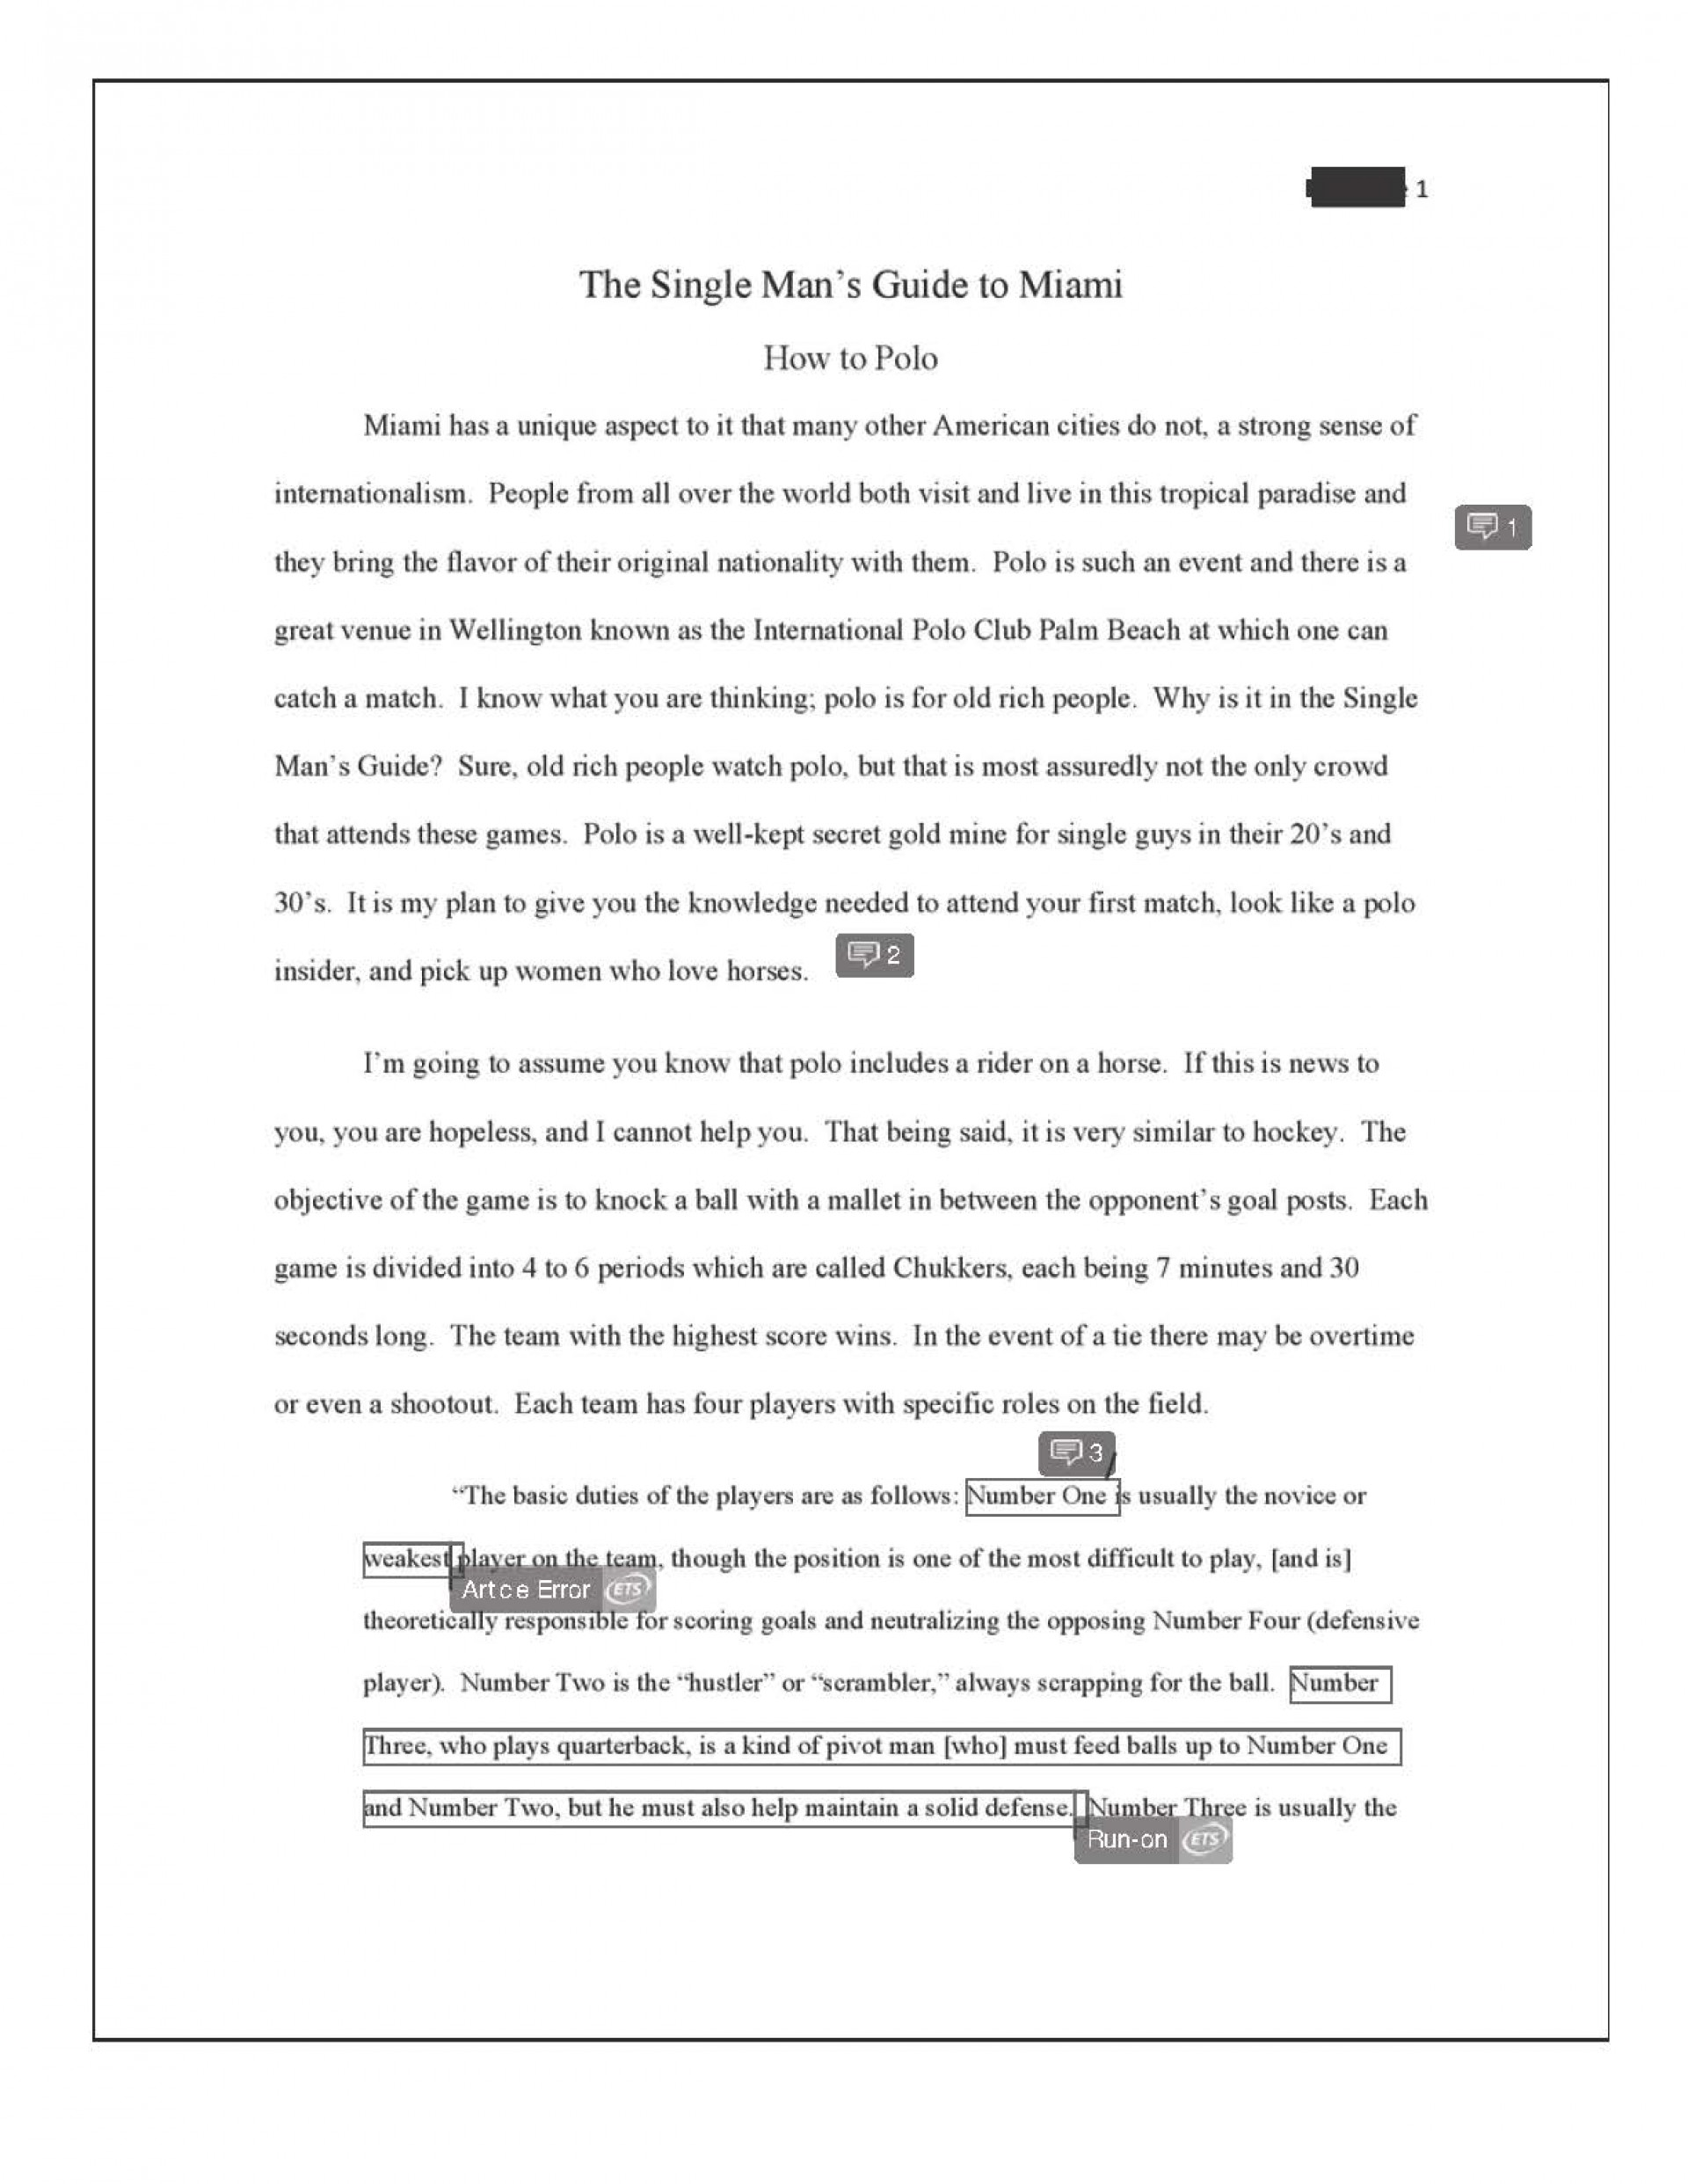 005 Informative Essay Topics Essays Sample Funny Argumentative For Middle School Final How To Polo Redacted P College Students Hilarious Good Remarkable Expository 5th Grade Paper Prompts 1920